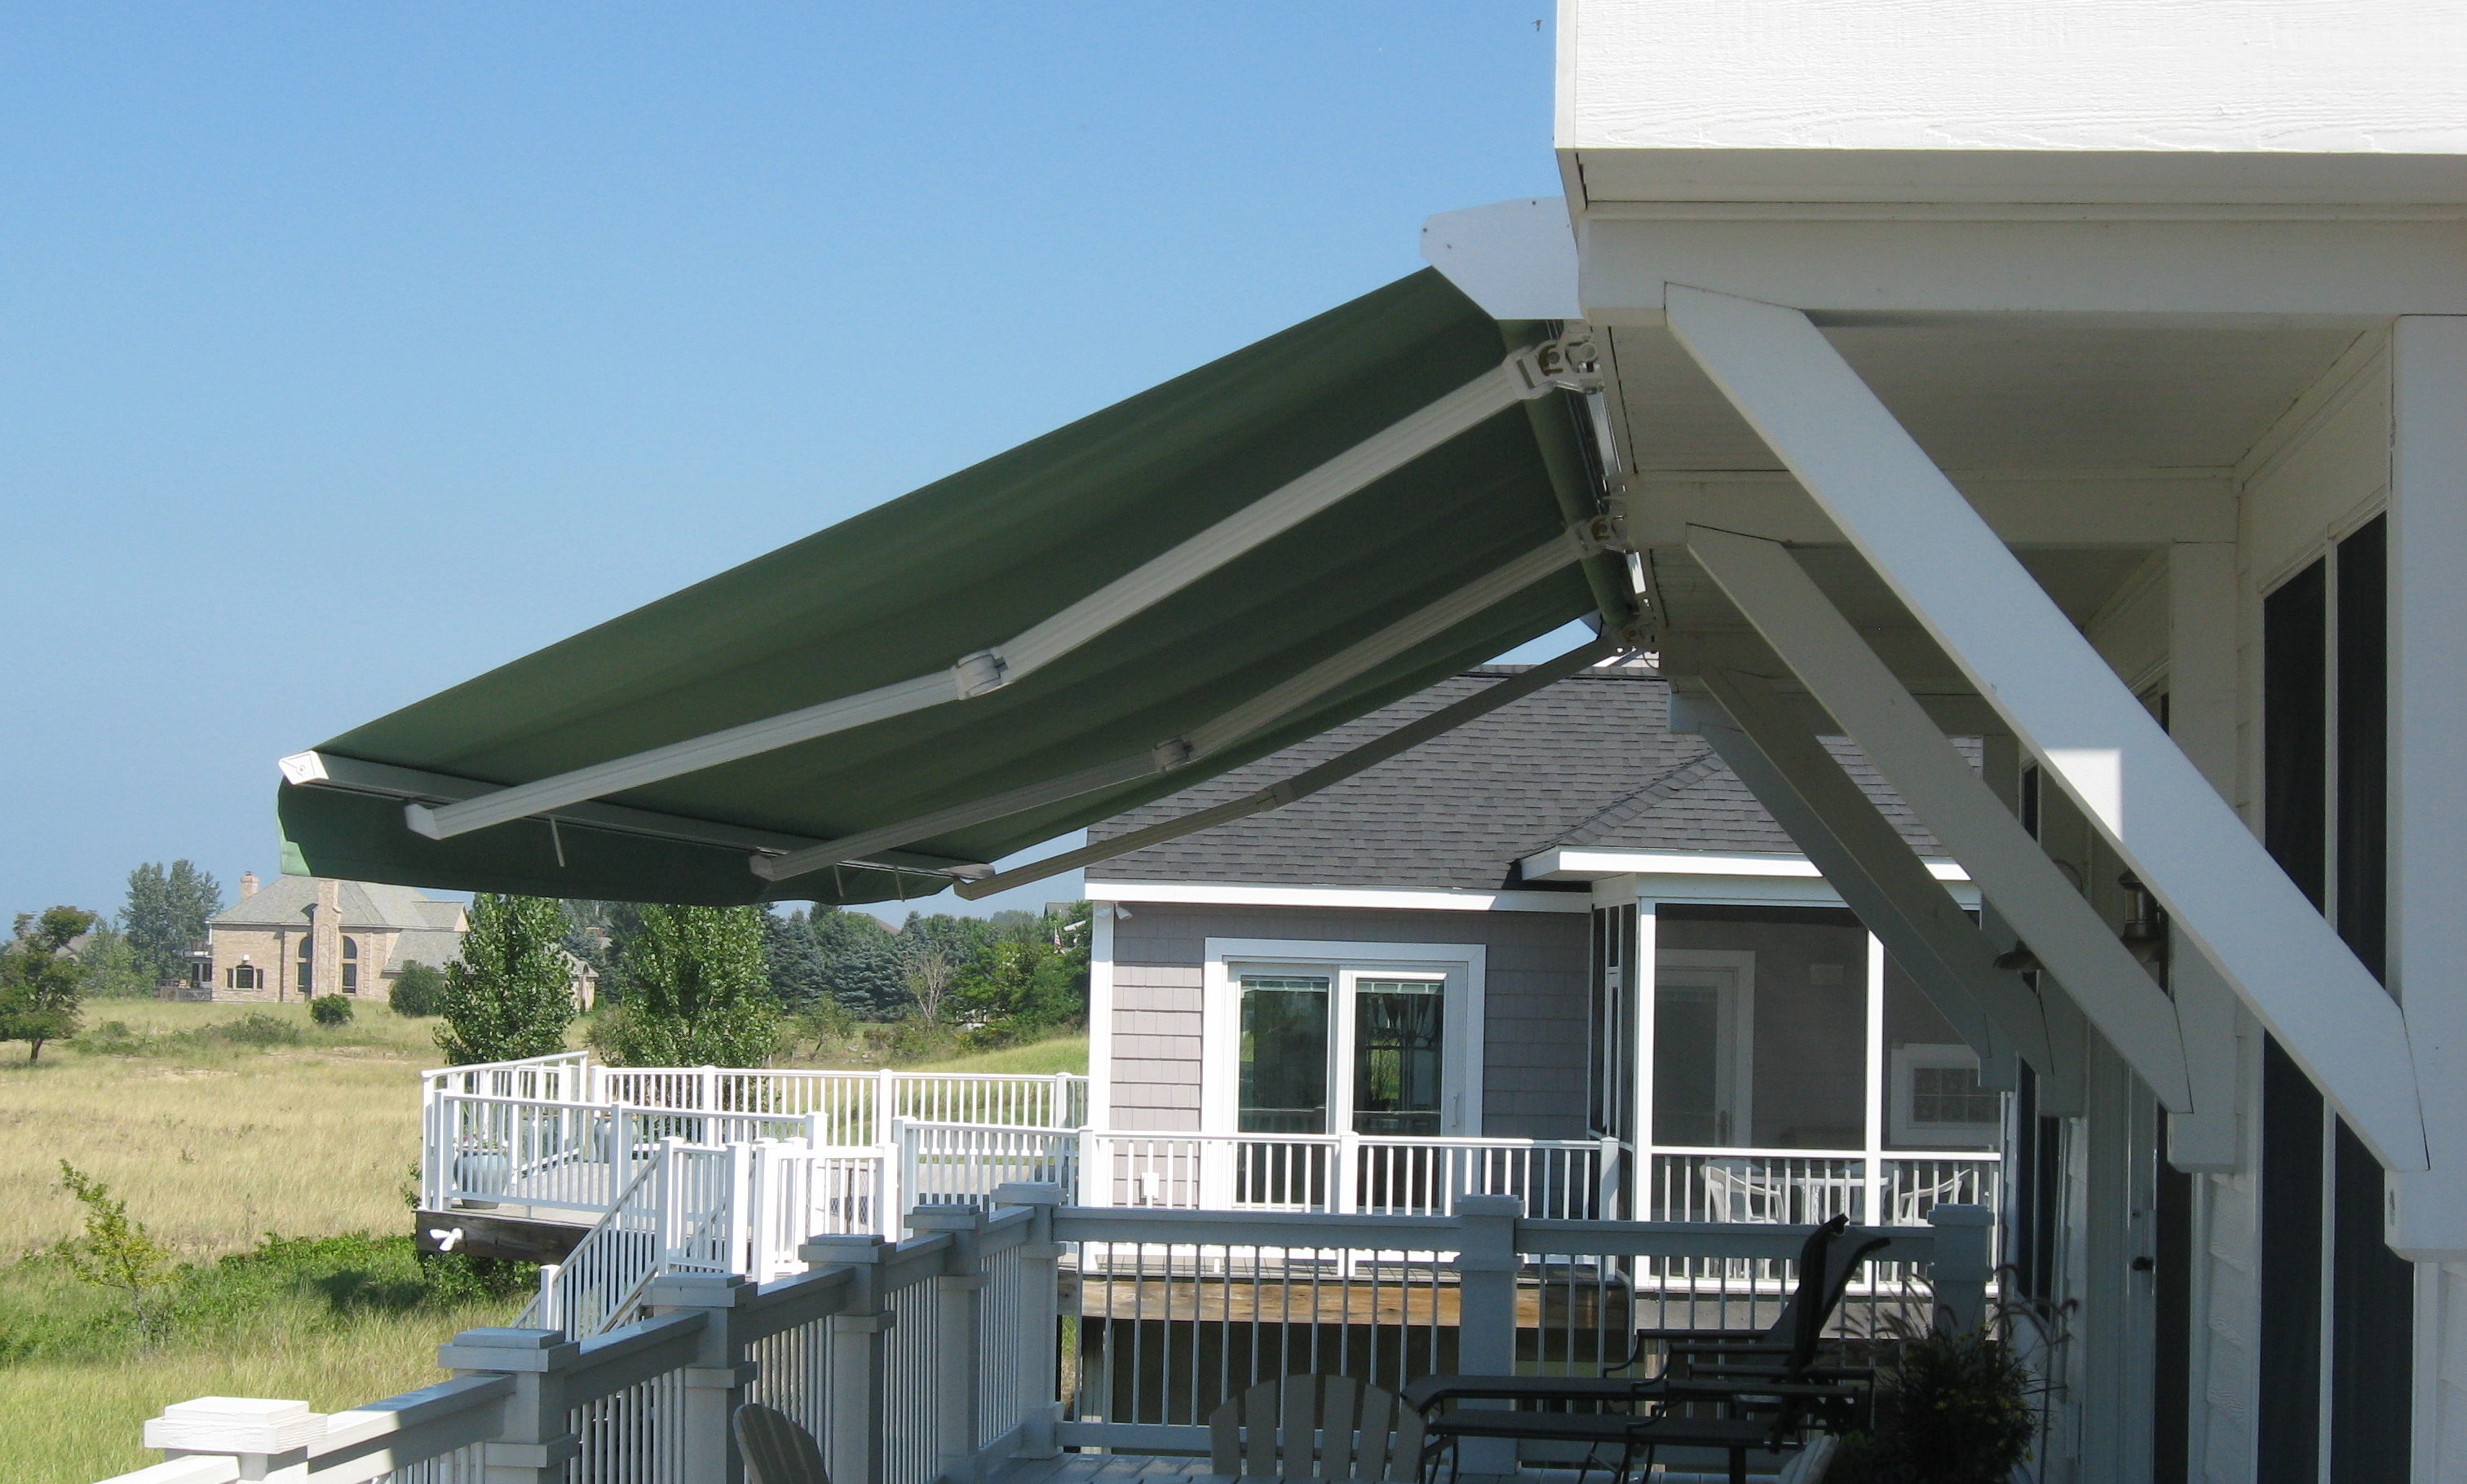 Electric & Manual Retractable Awnings | Muskegon Awning